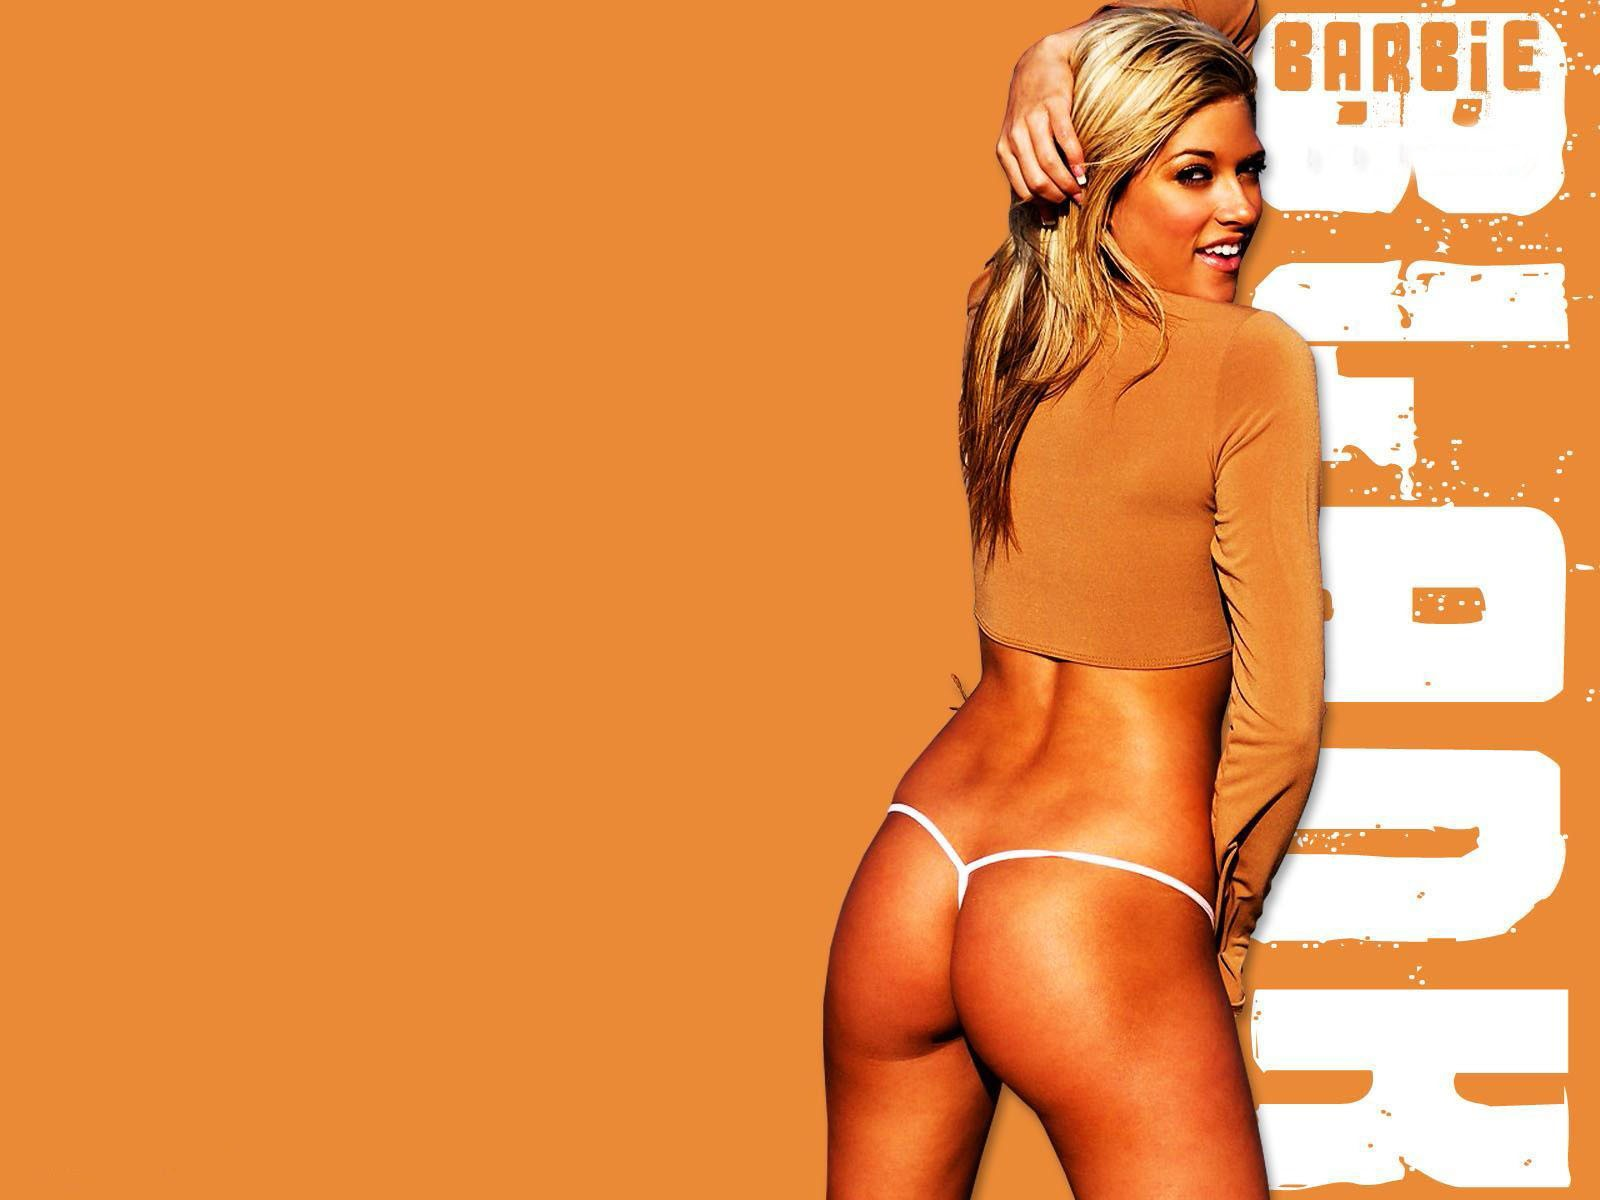 Abstract Wwe Kelly Wwe Kelly Kelly Wallpaper Free Wallpapers Wallpaper